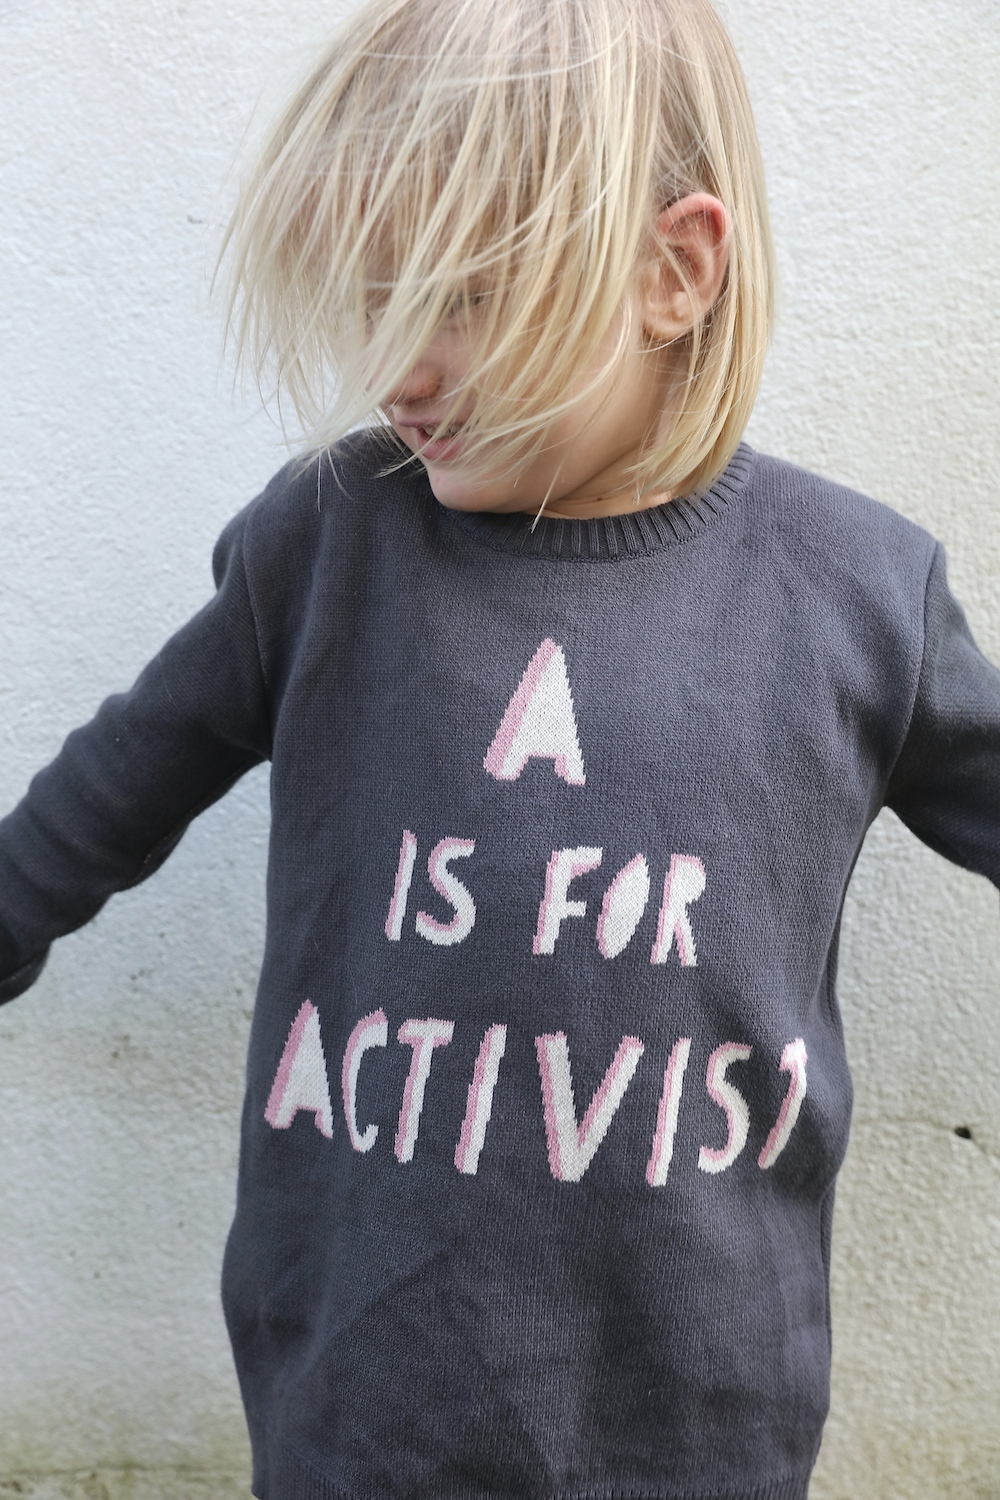 a_is_for_Activist_by_cissy_wears_jumper